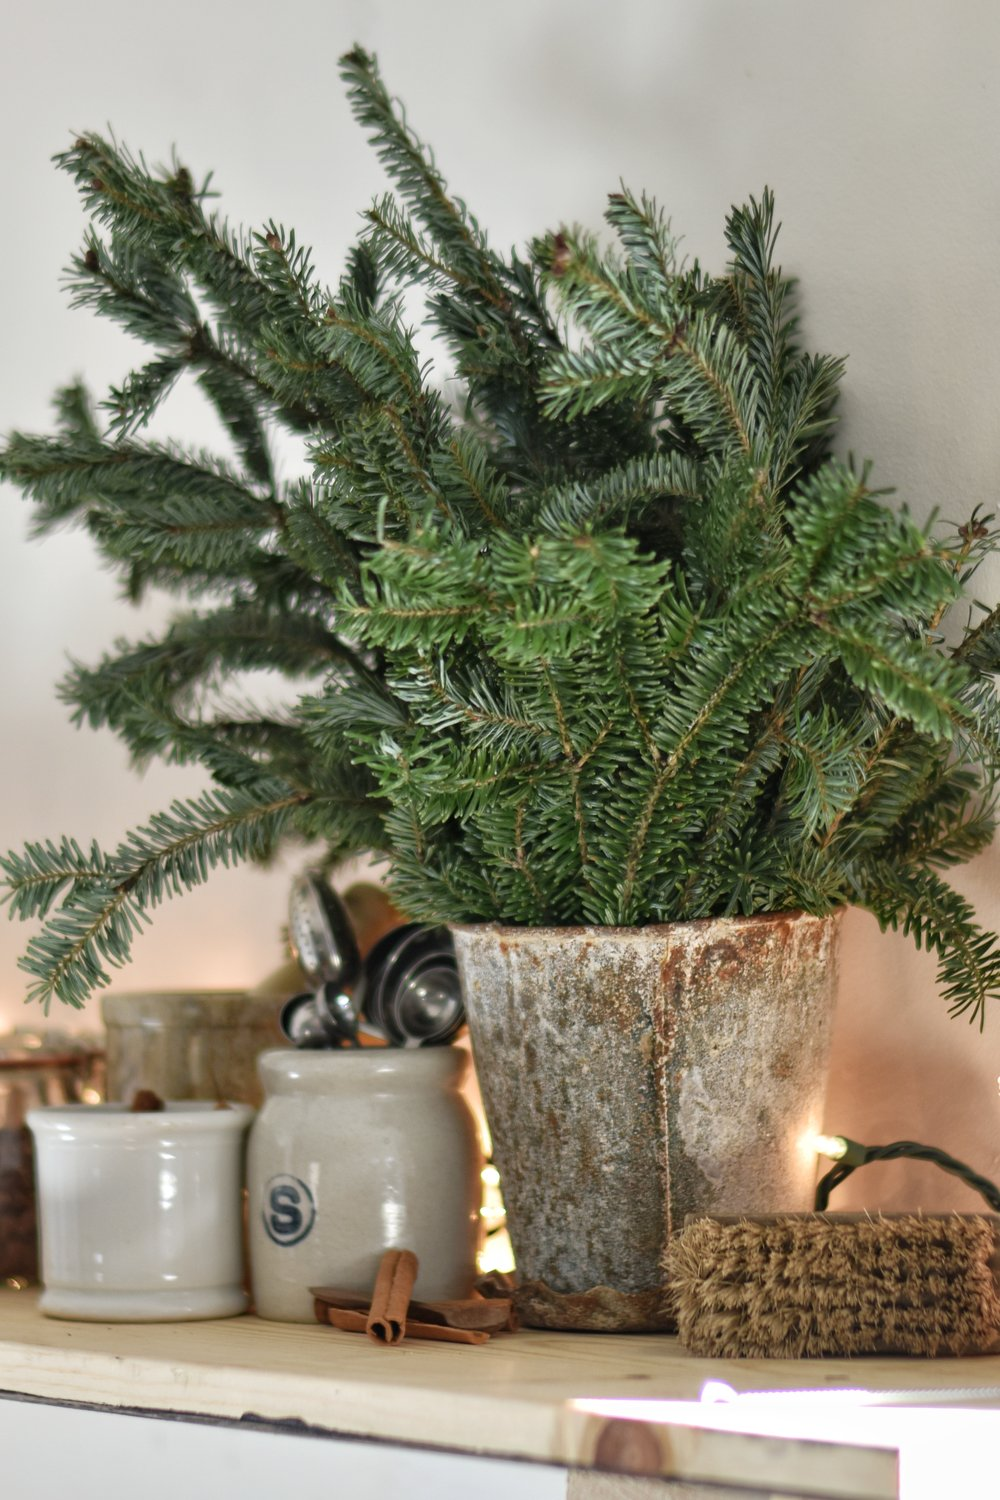 How to keep your Christmas Greenery from falling off and into the floor. An easy tip to preserving your Christmas greenery.